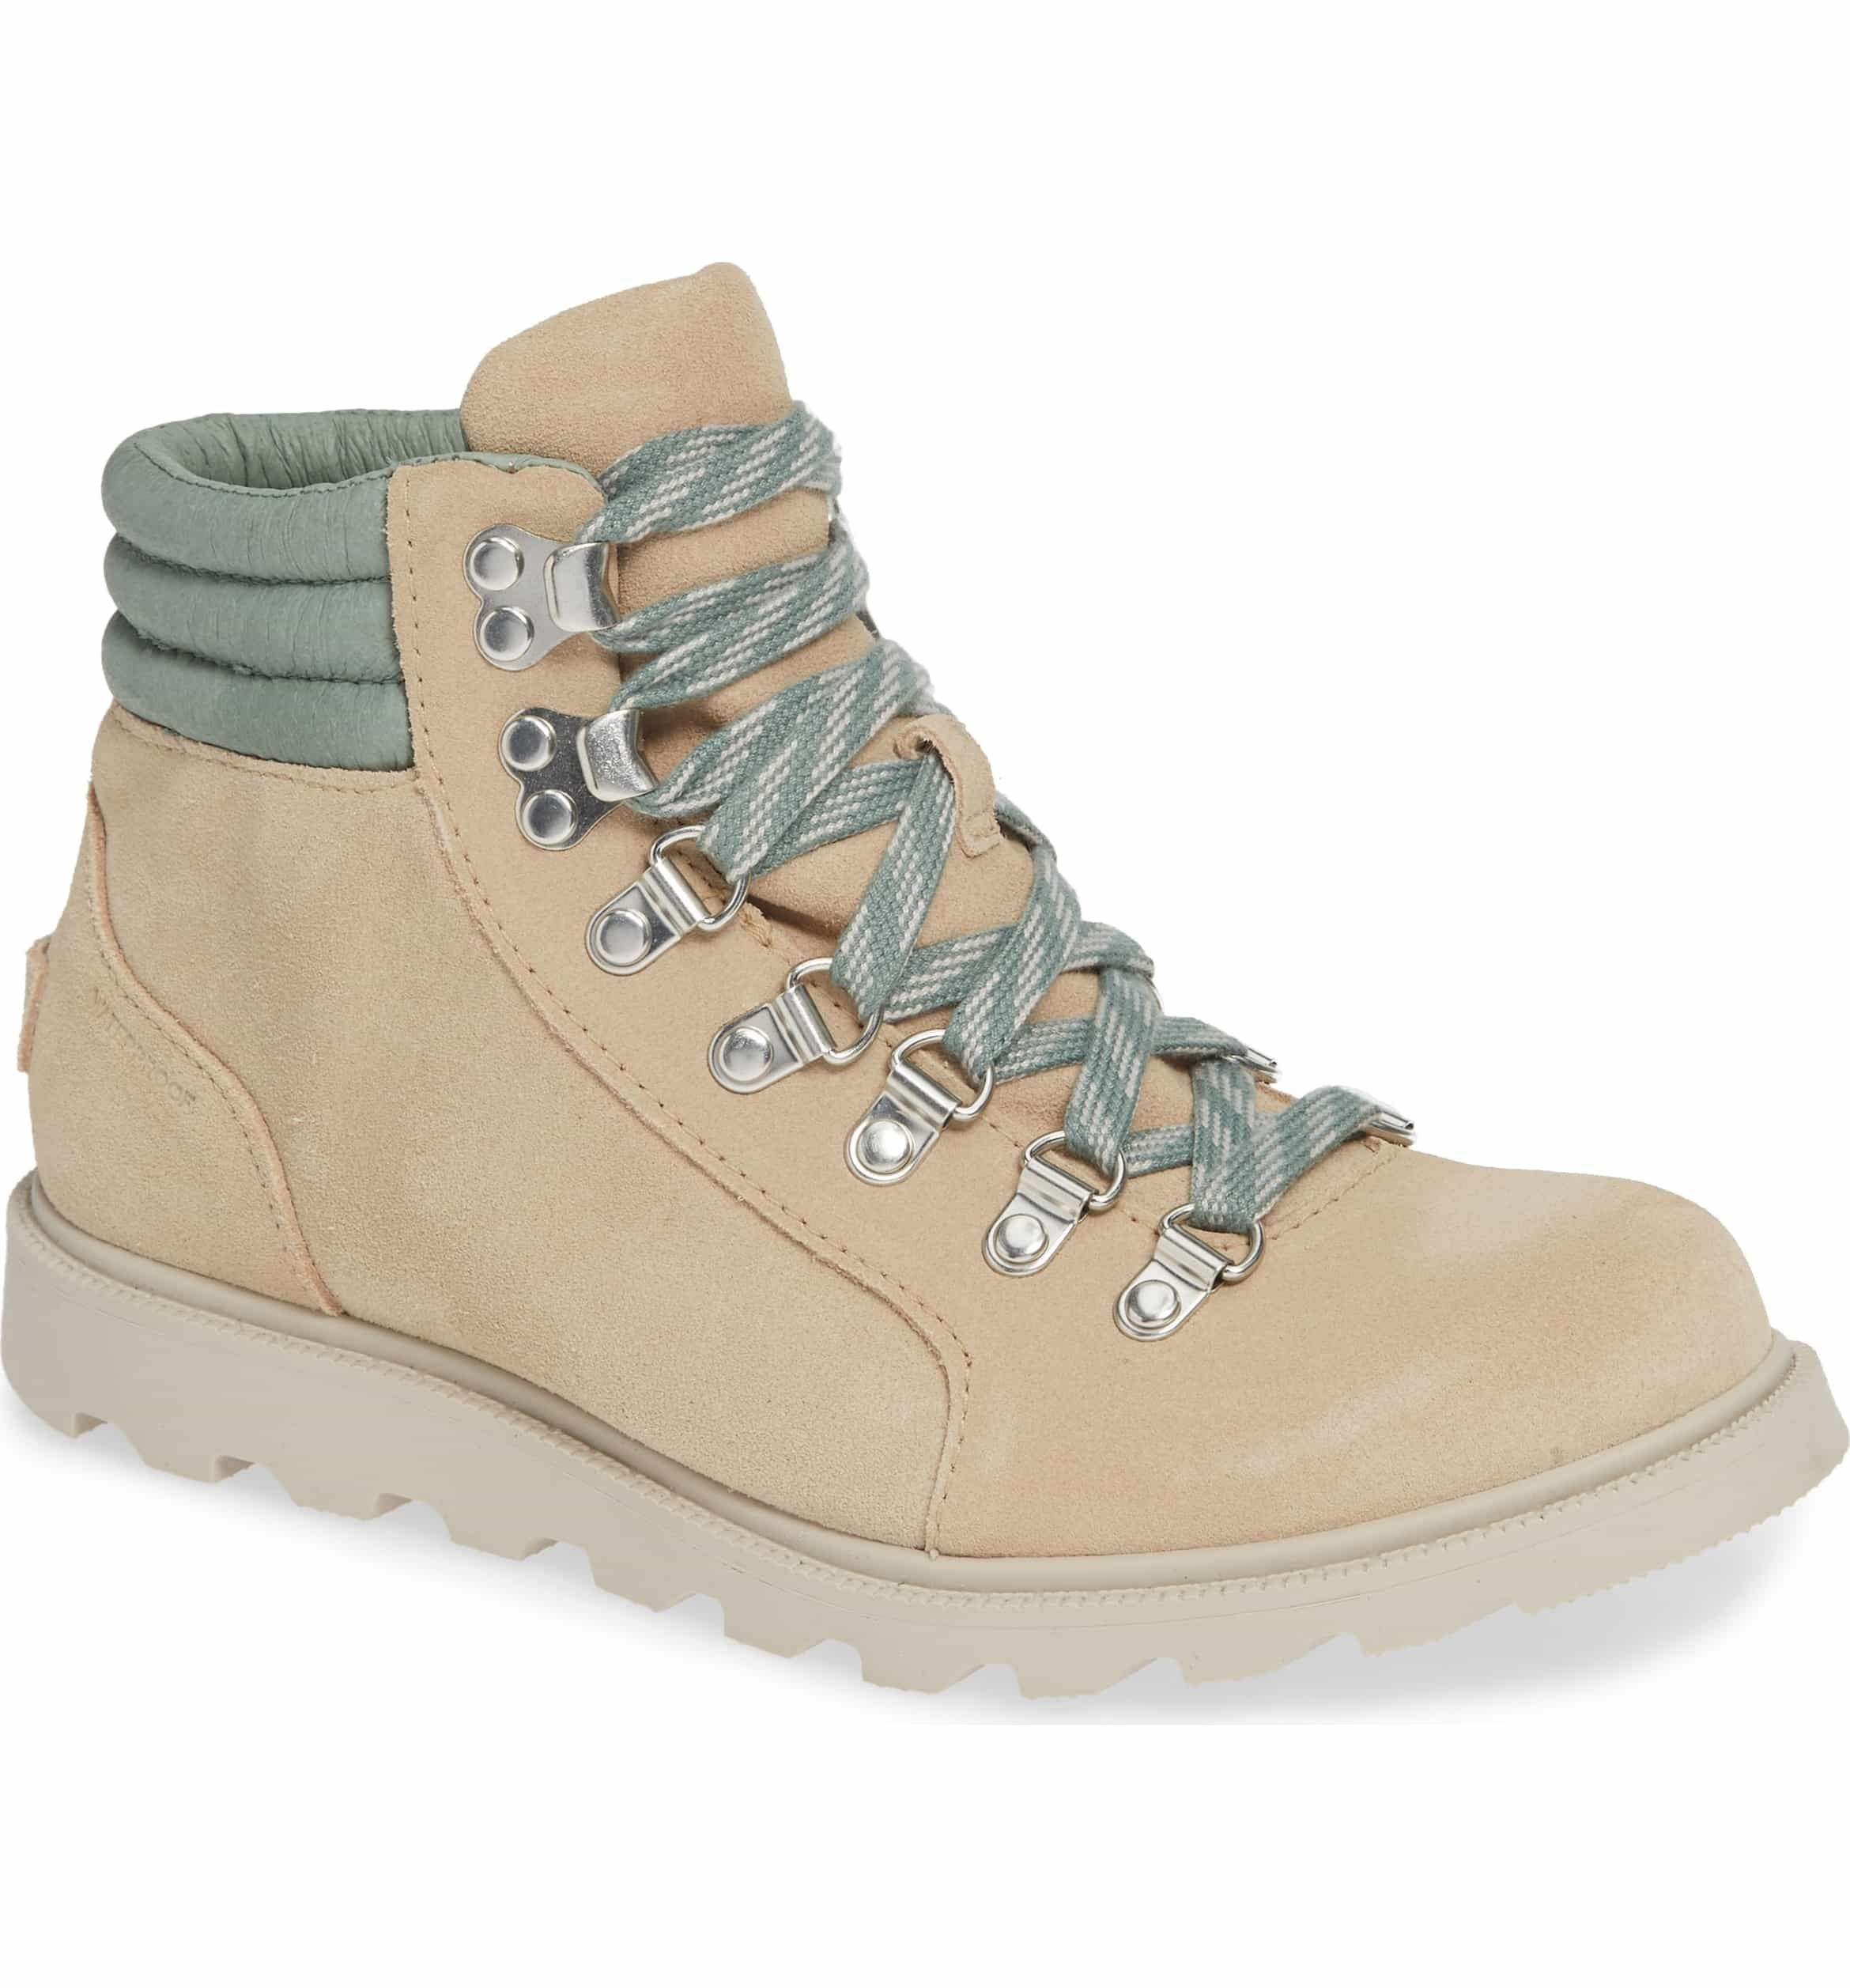 542fe5f529f Ainsley Conquest Waterproof Boot, Main, color, OATMEAL | fashion ...